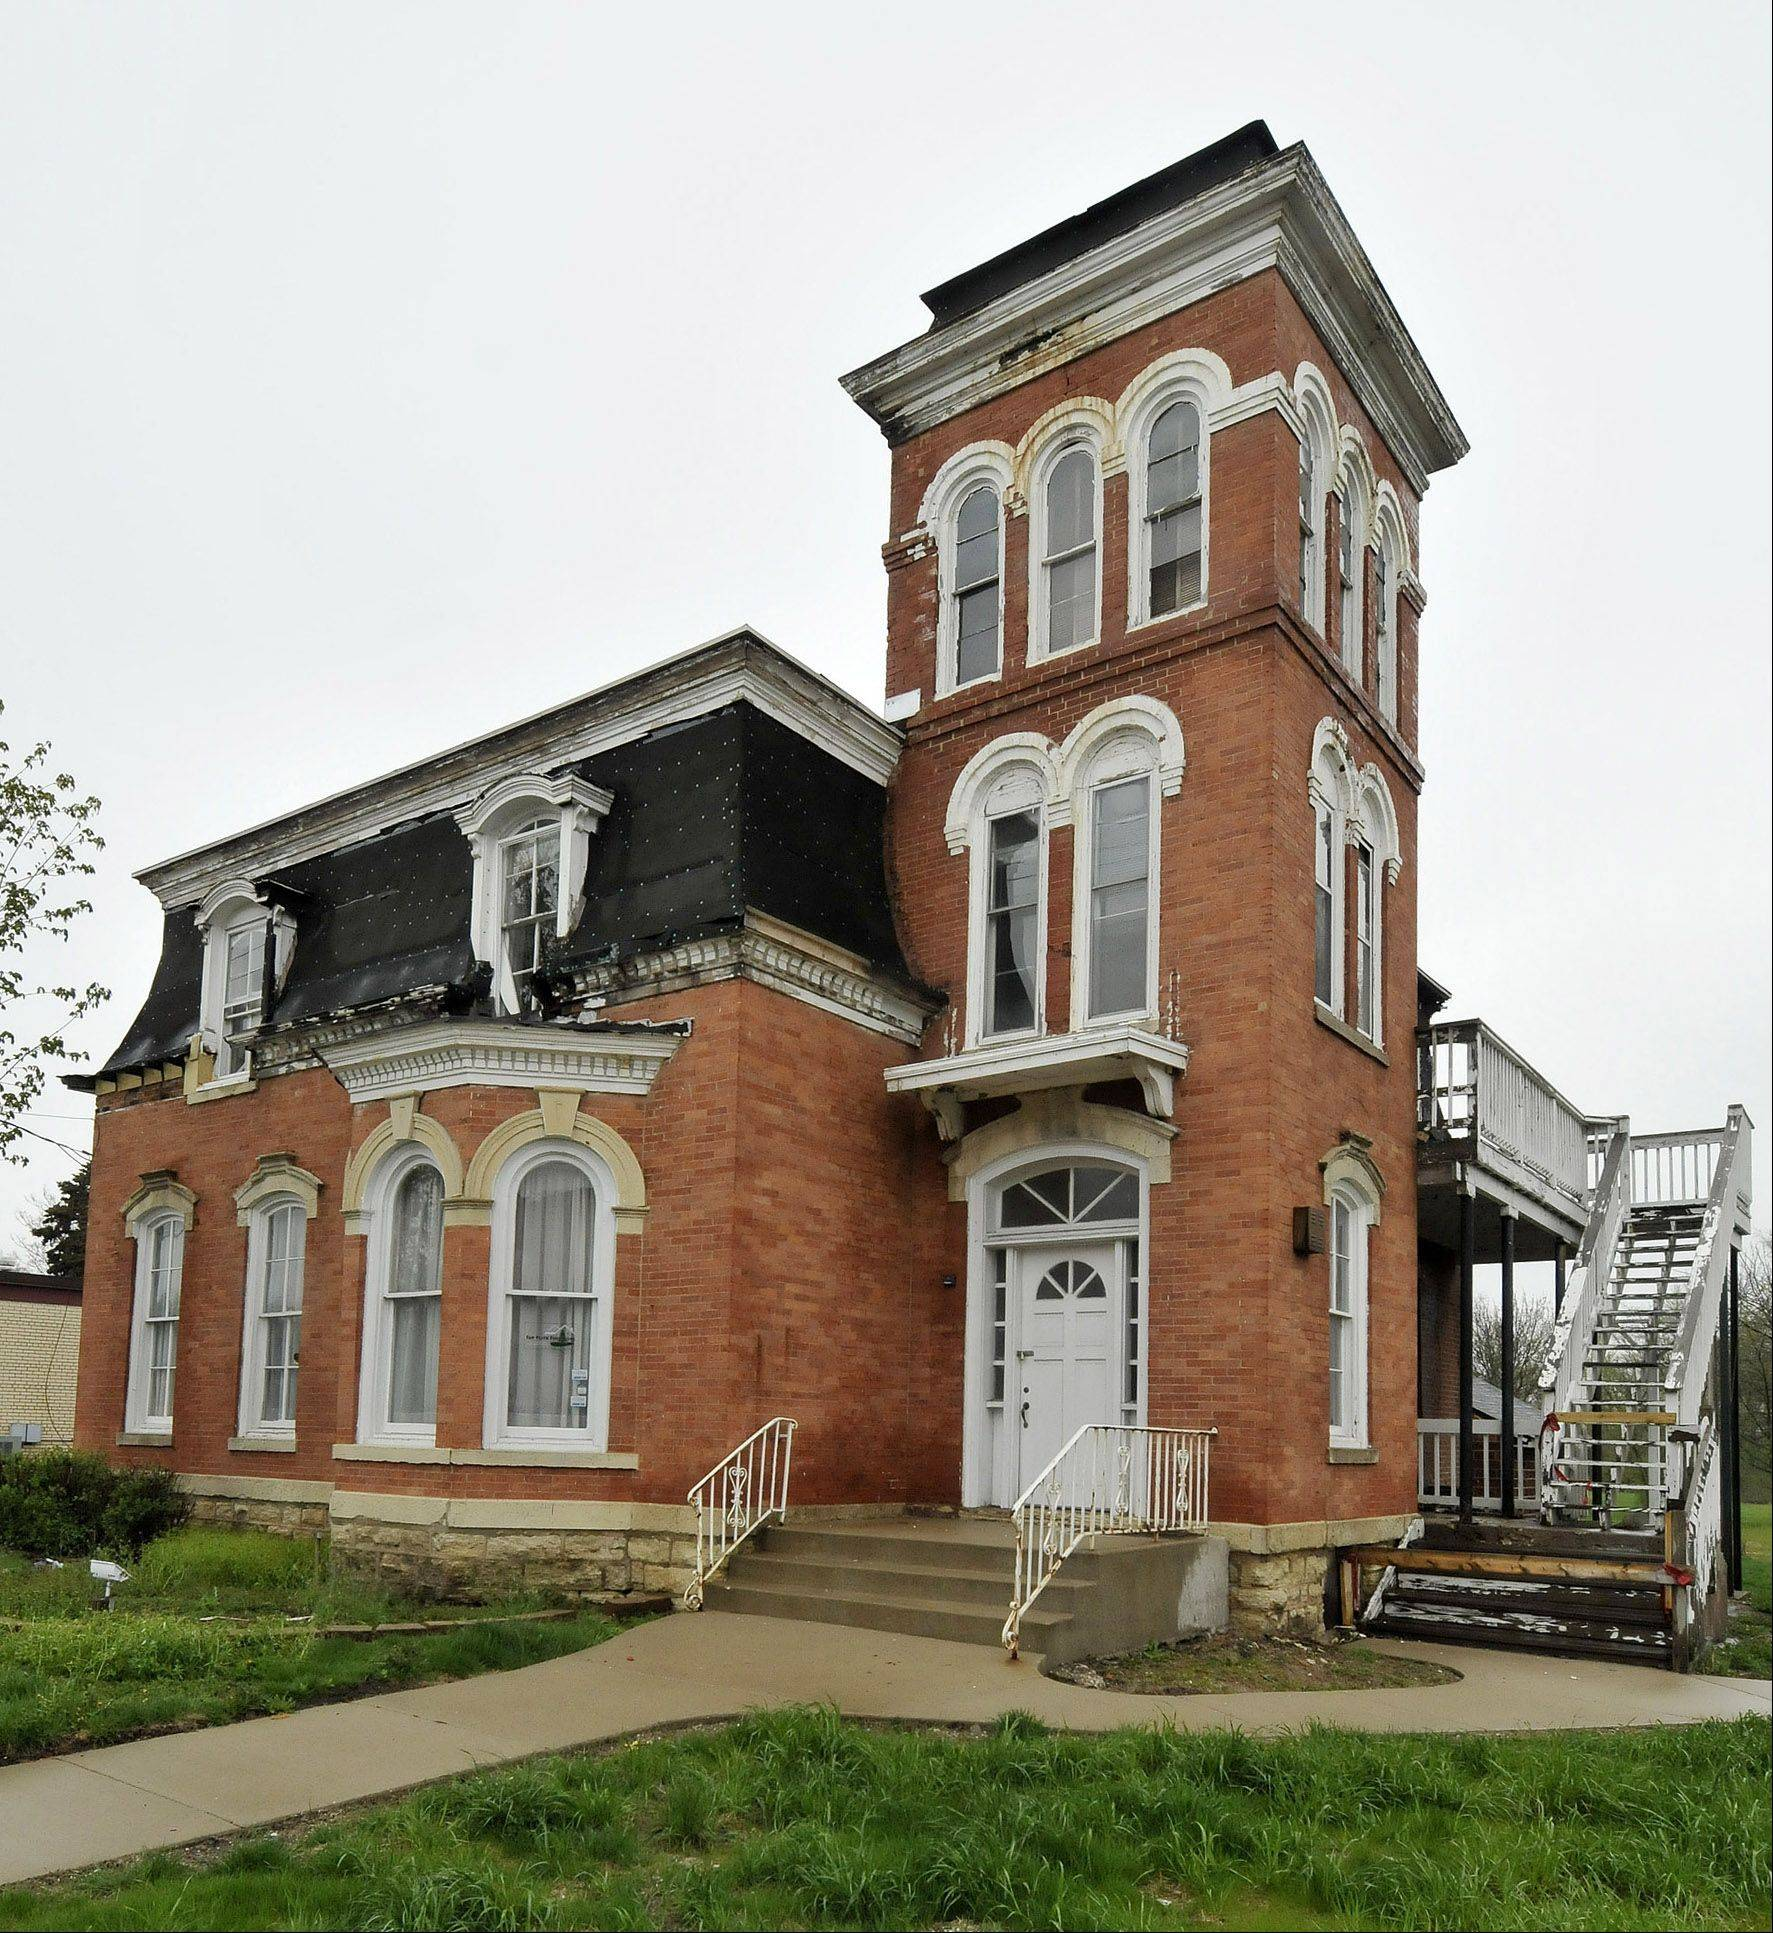 West Chicago officials are seeking permission from the city�s historic preservation commission to demolish the 144-year-old Joel Wiant House. It appears unlikely that will happen. But the city council gets the final say on whether the house at 151 W. Washington St. will be razed.